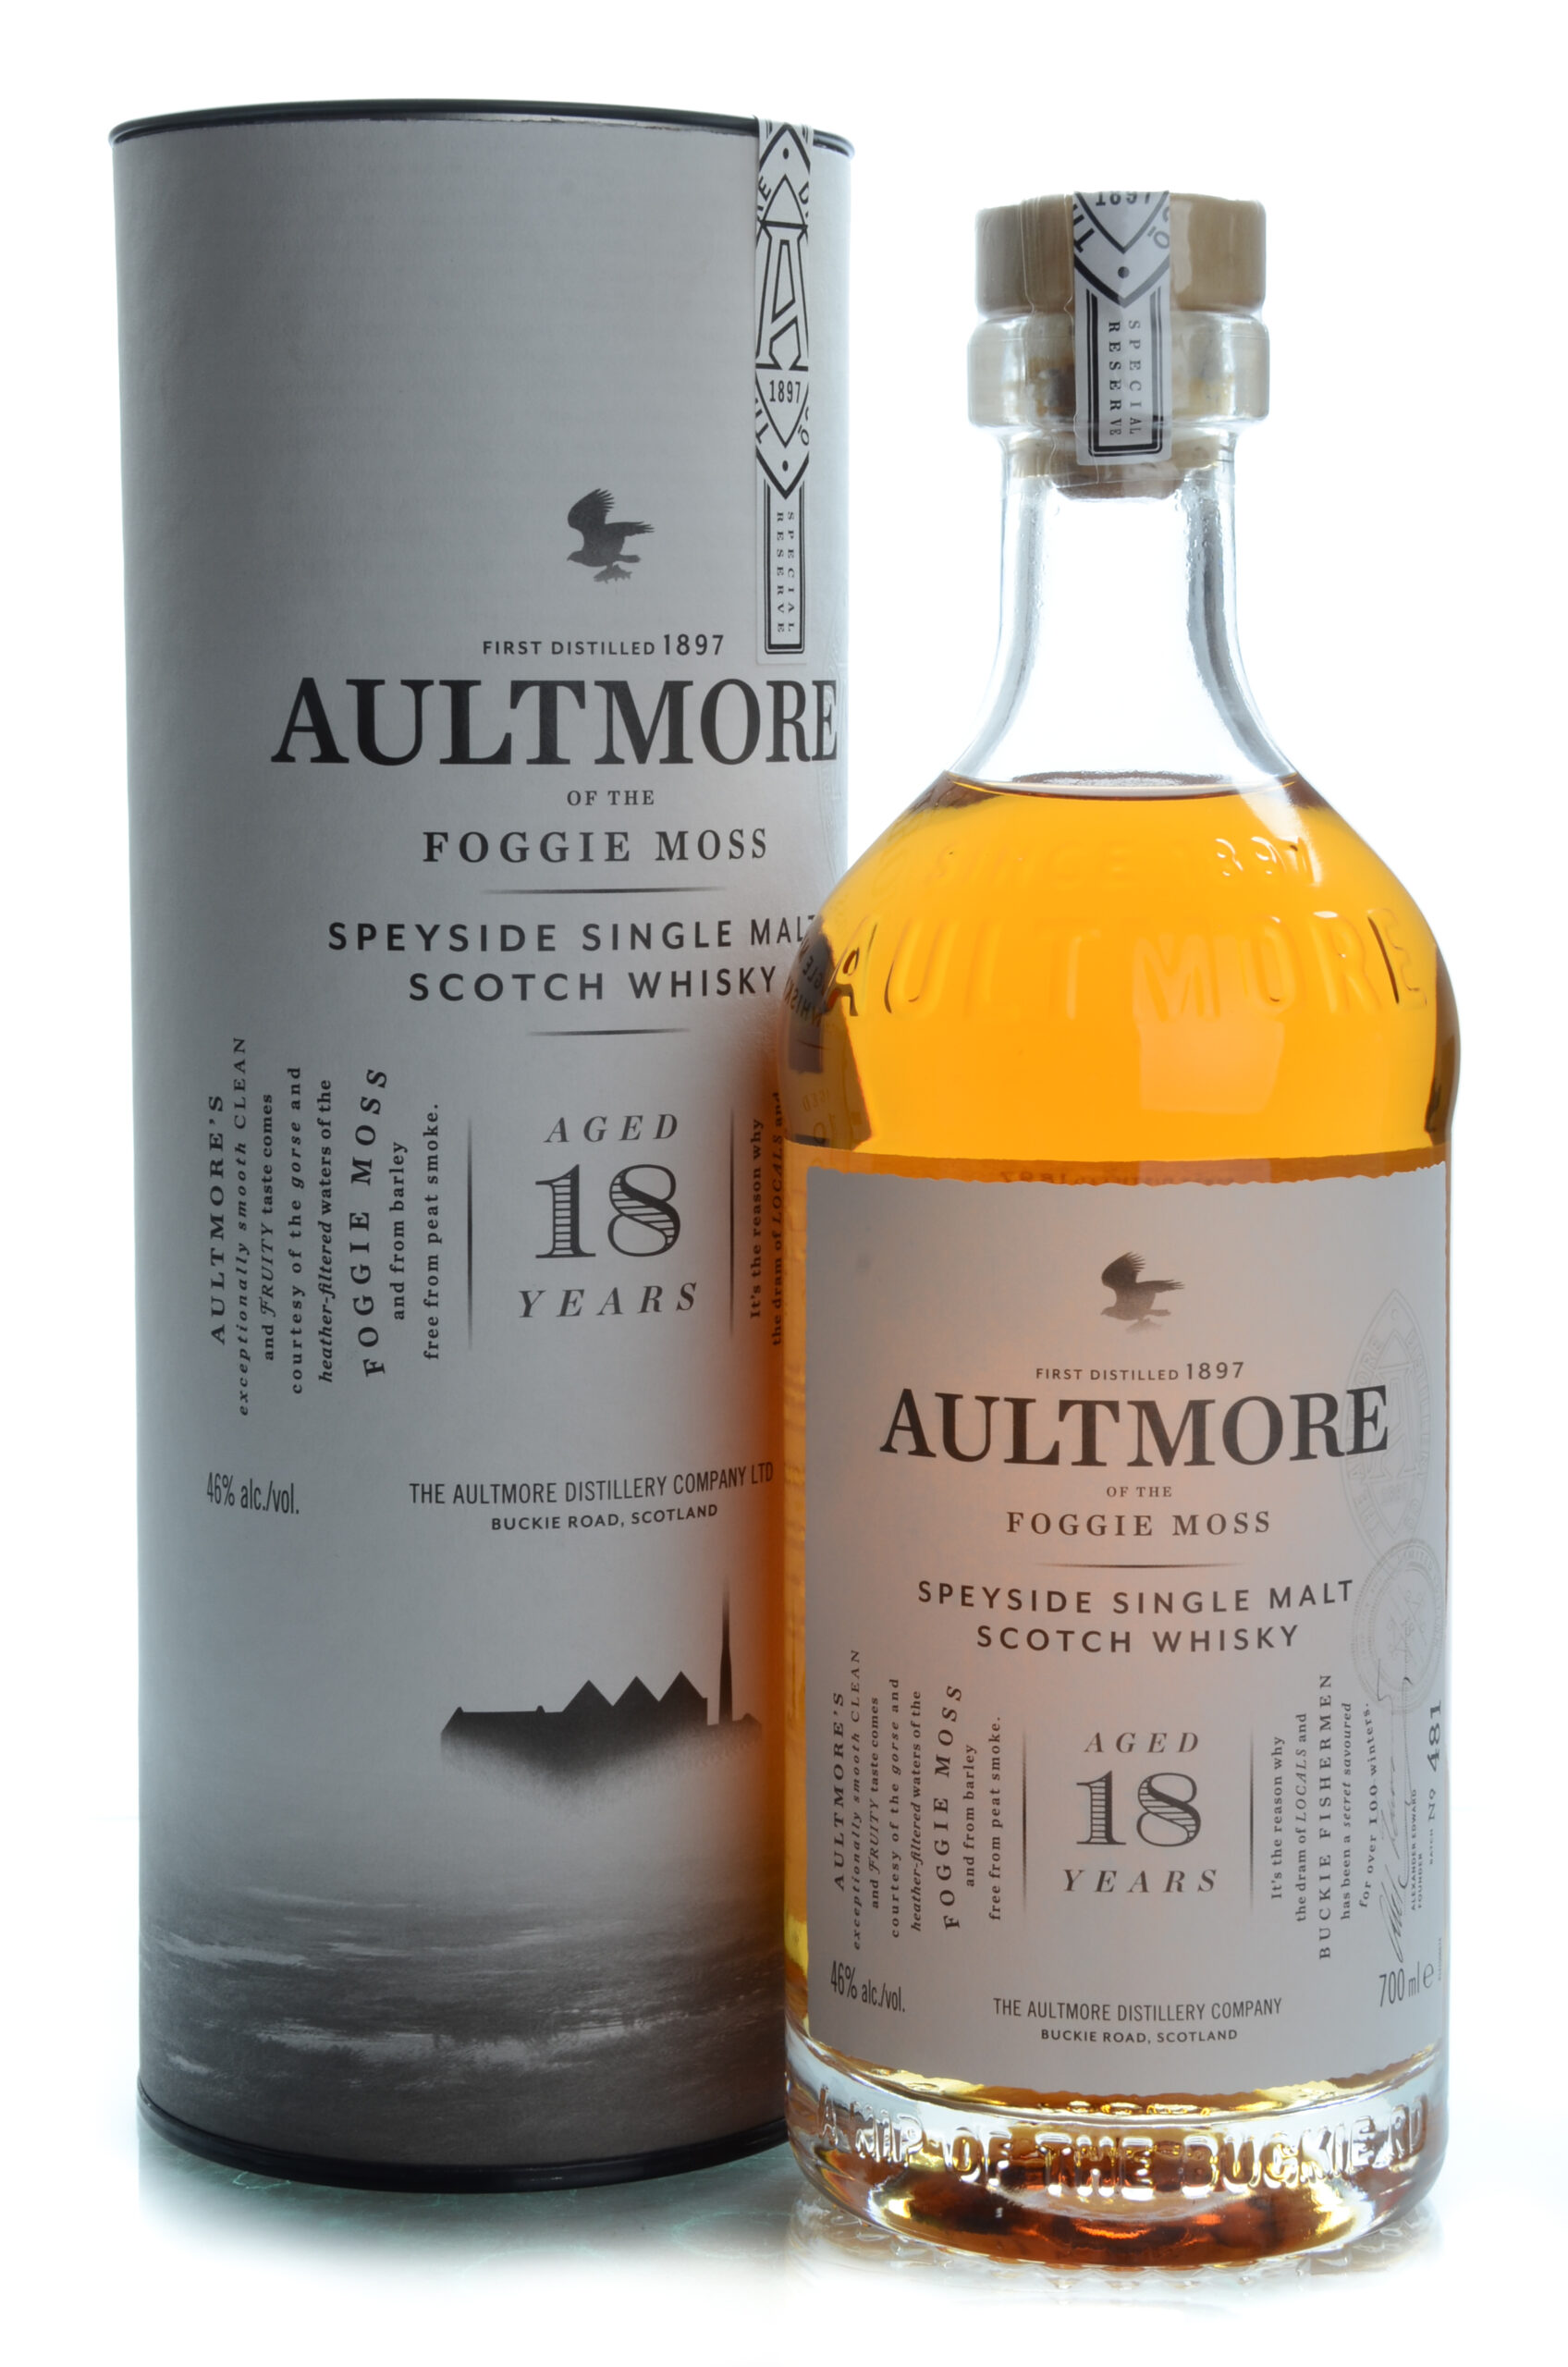 Aultmore of the Foggie Moss 18 years